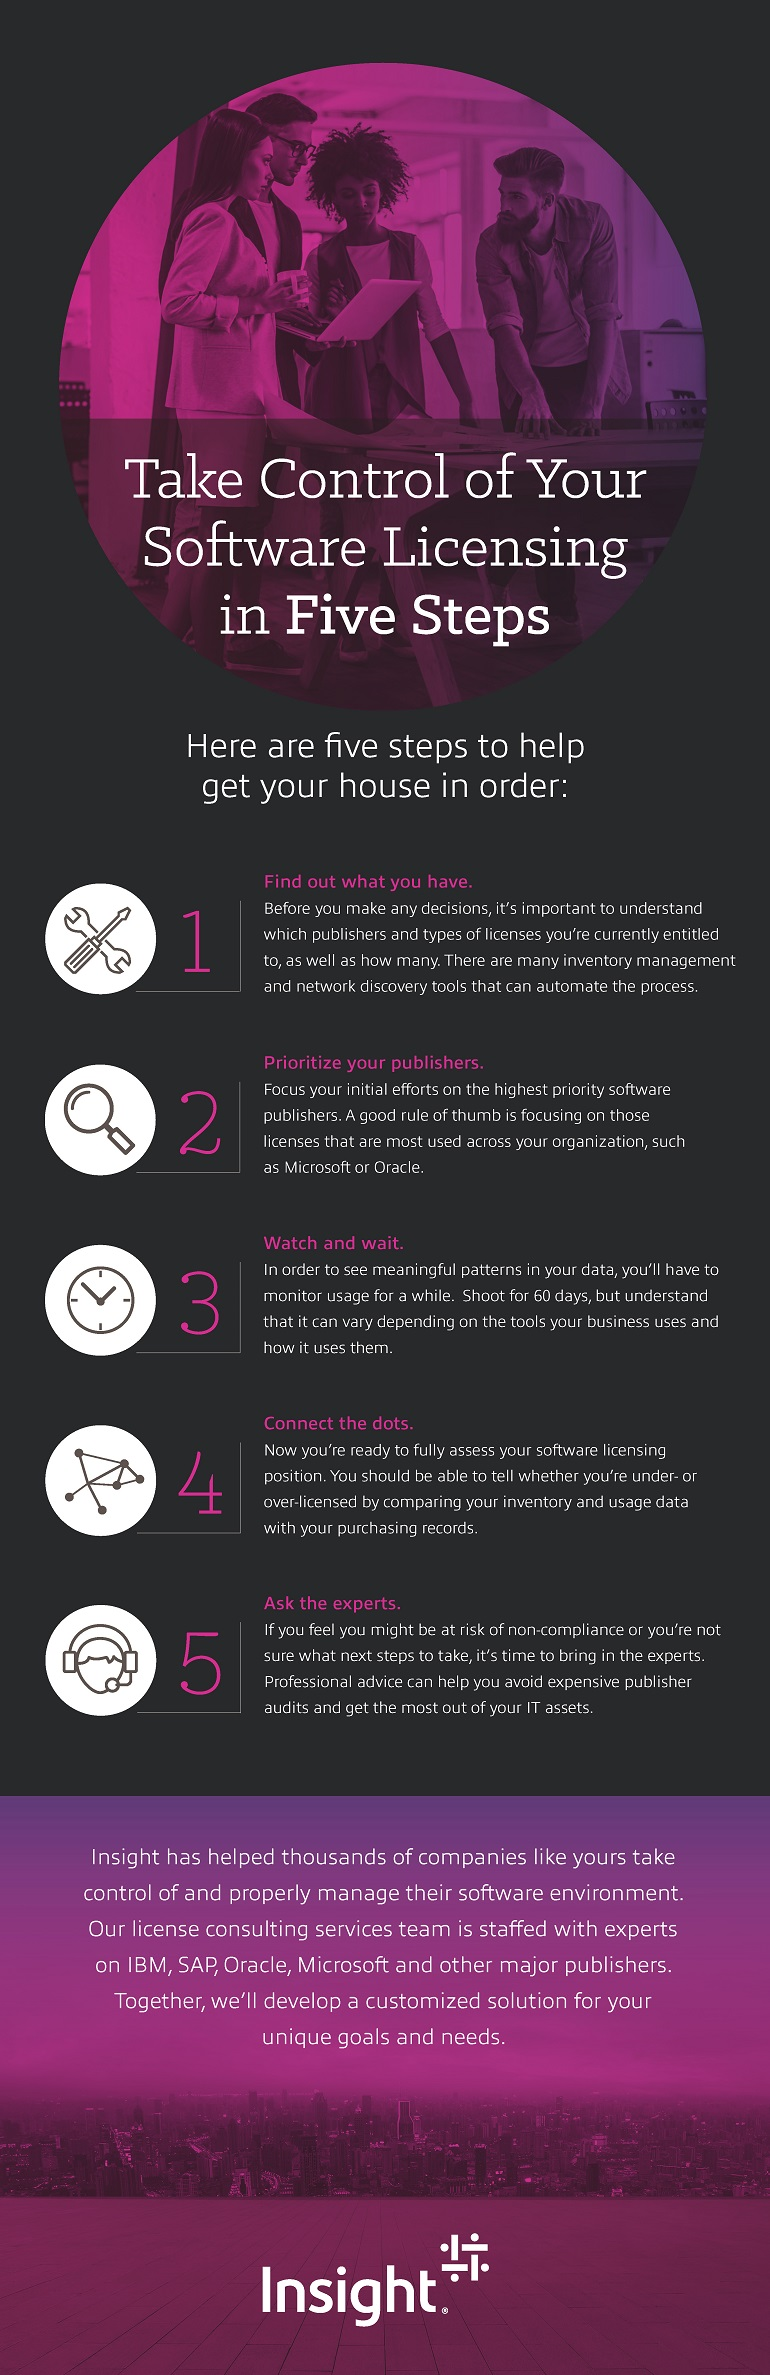 Infographic displaying the Take Control of Your Software Licensing in Five Steps infographic. Translated below.